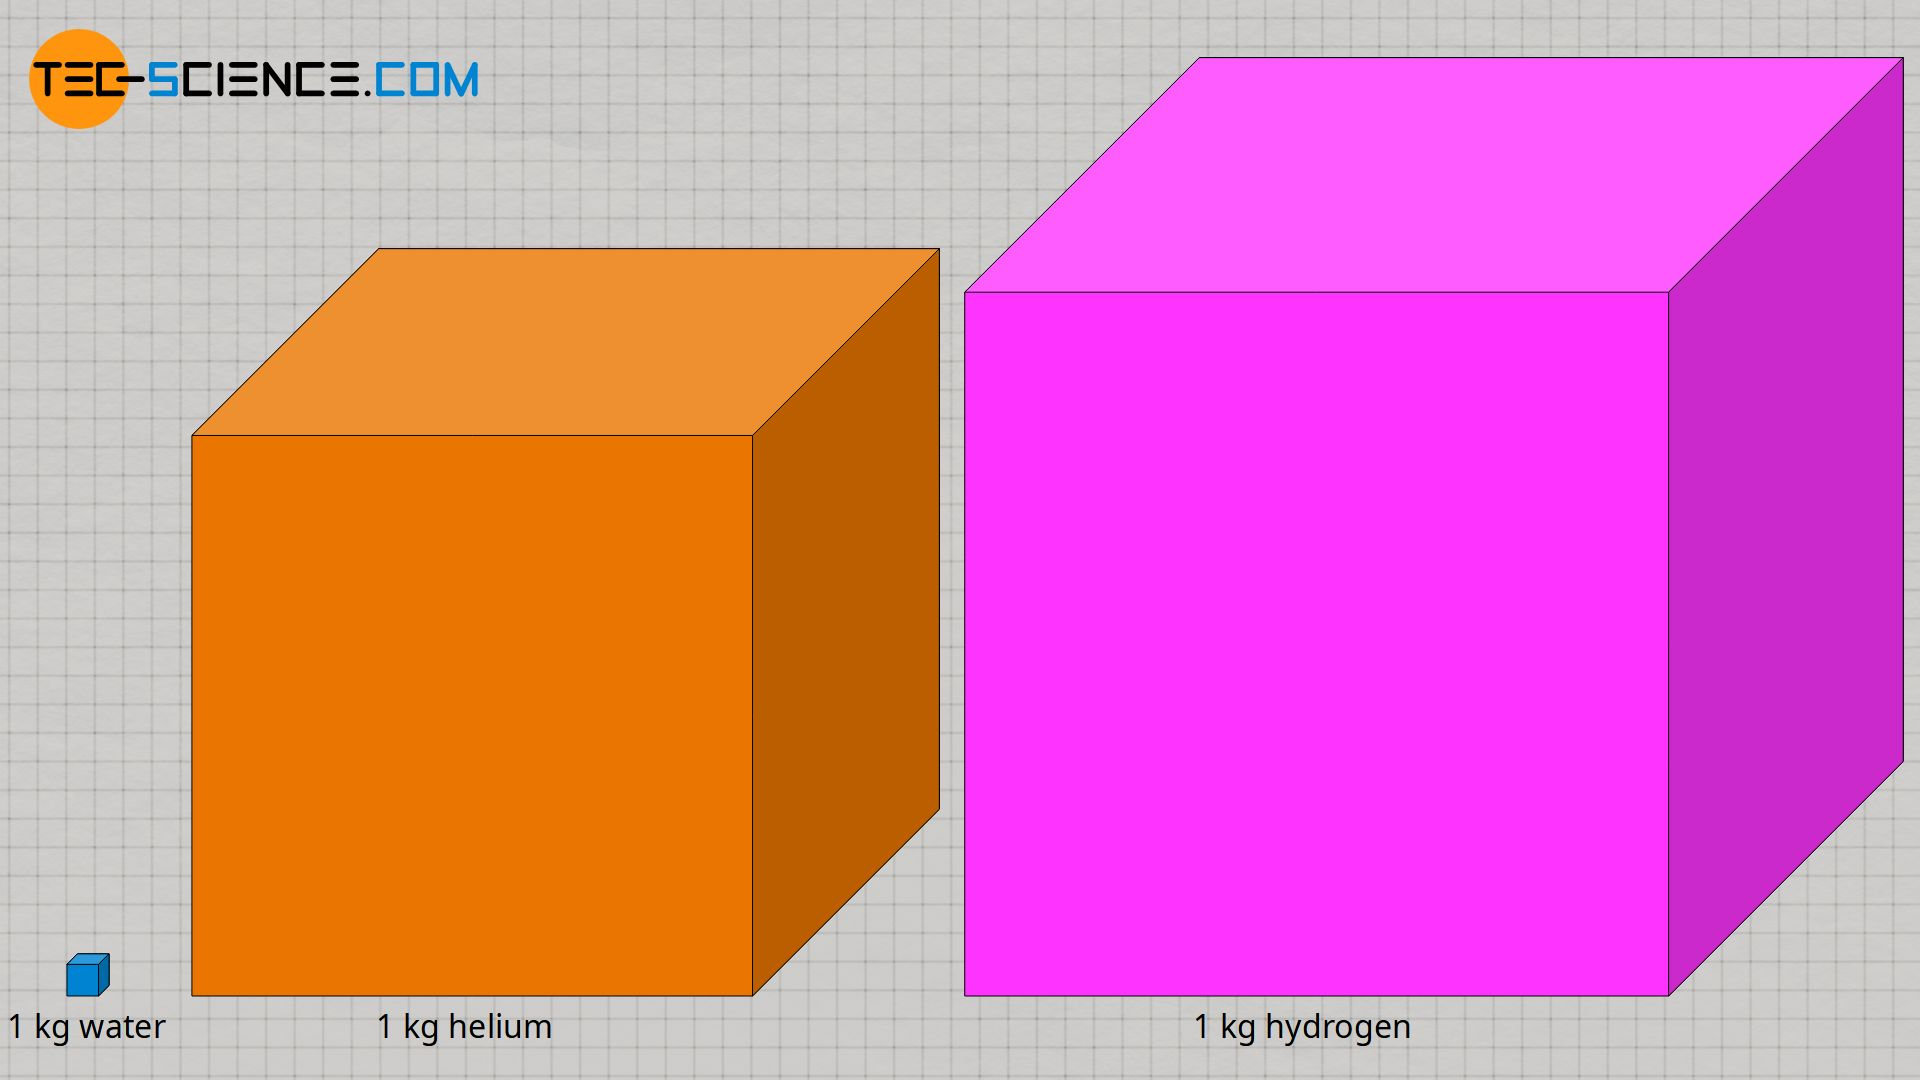 Comparison of the volume of 1 kg hydrogen, helium and liquid water (at 1 bar)